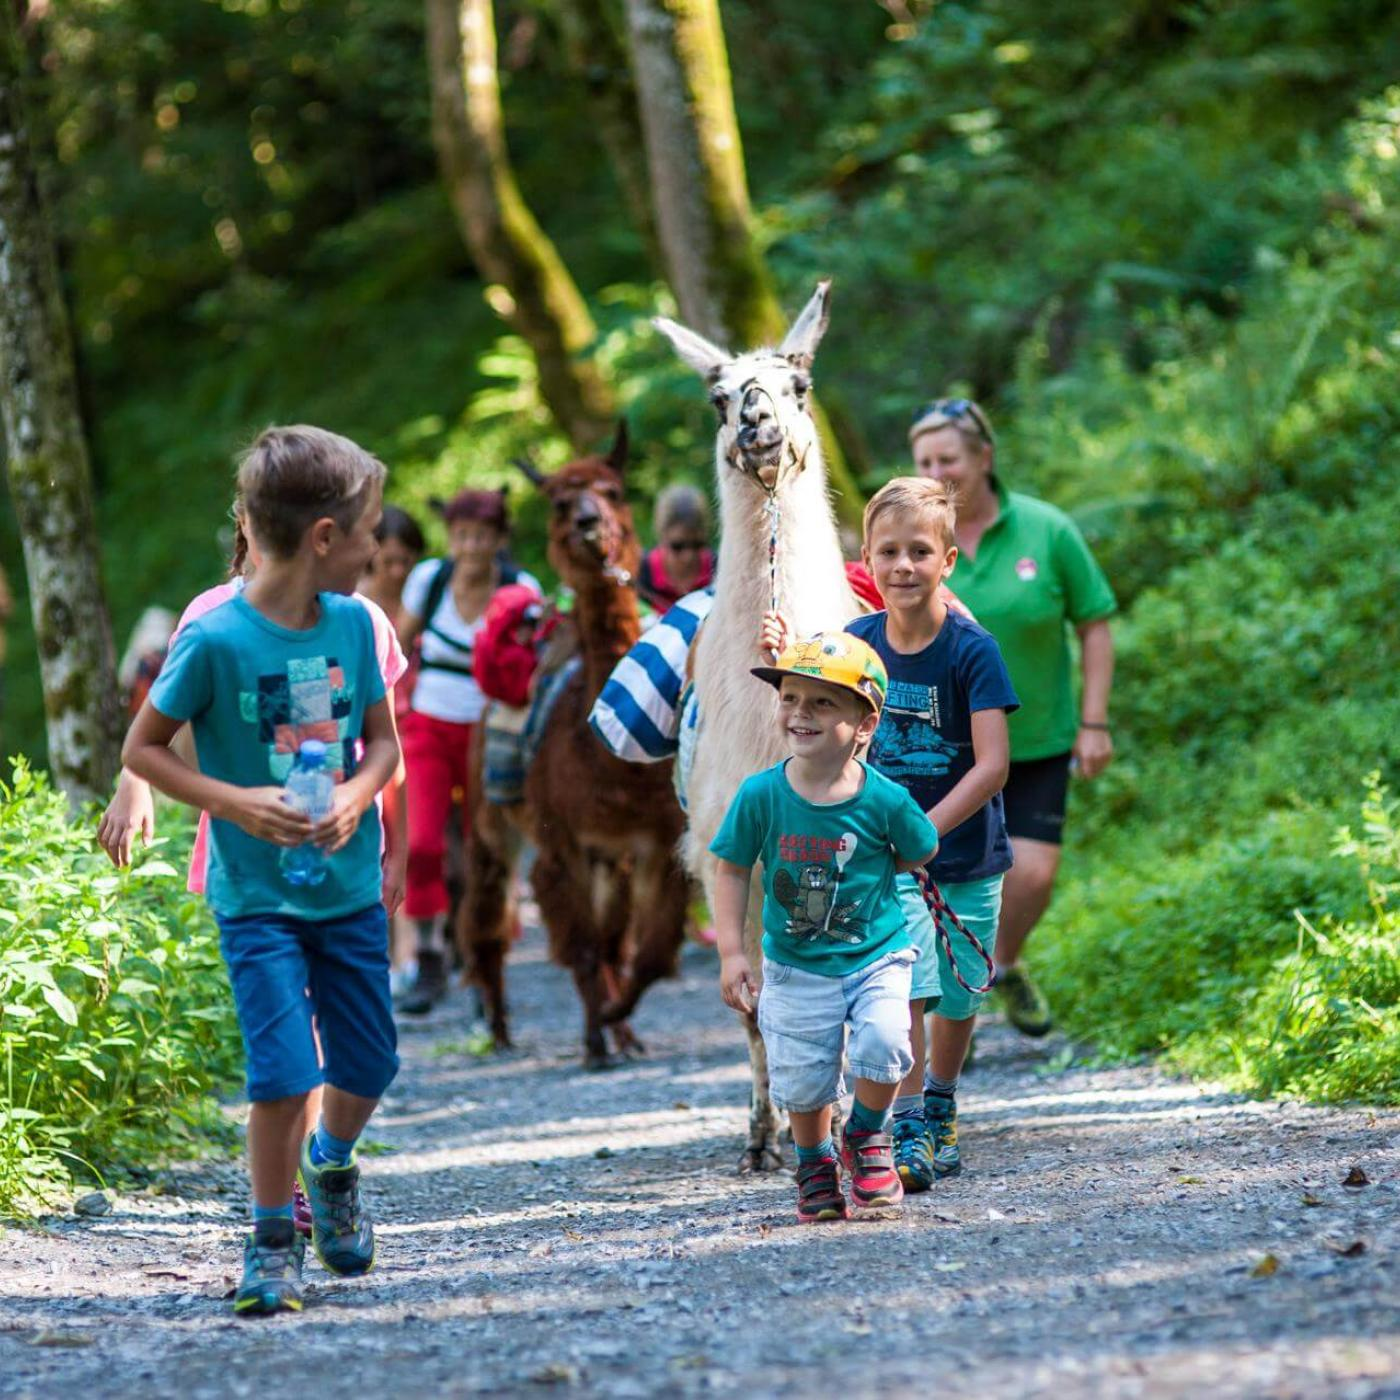 Lamawandan mit Kindern in der Pension Alpenrose in Kaprun.